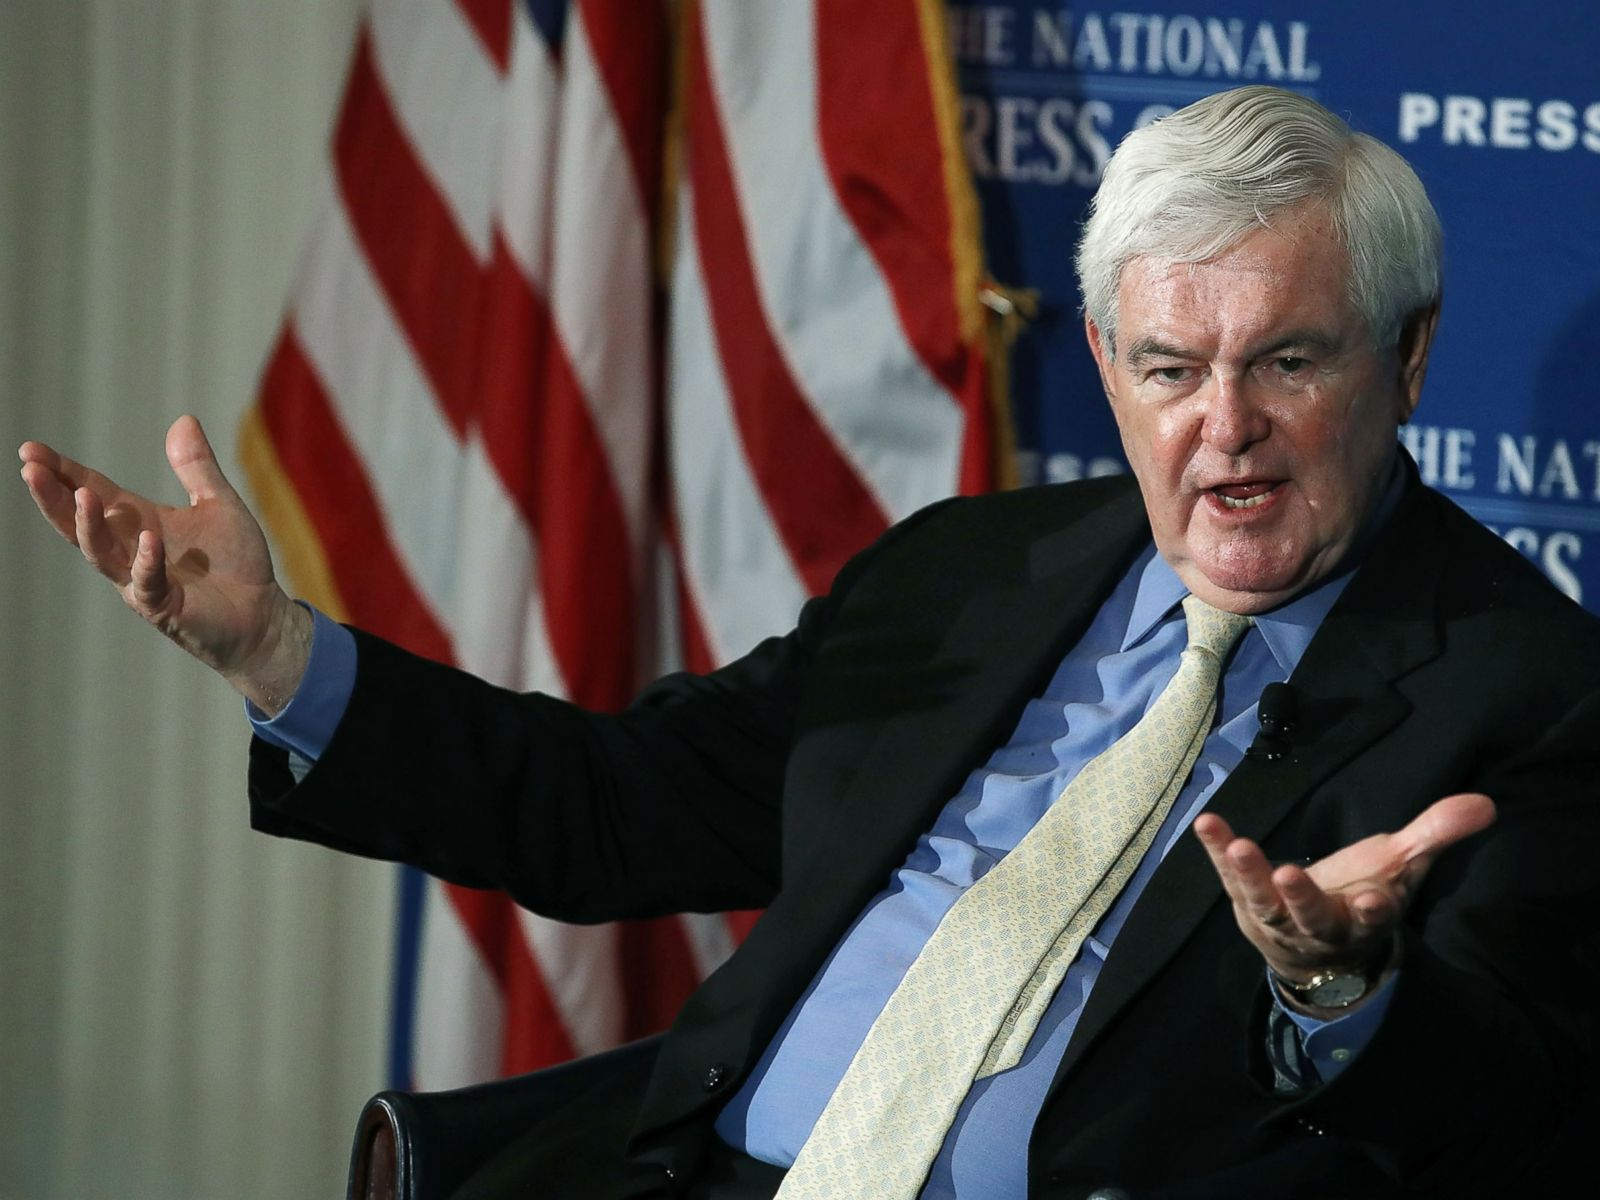 Newt Gingrich: US must wake up and see China for what it really is – Before it's too late